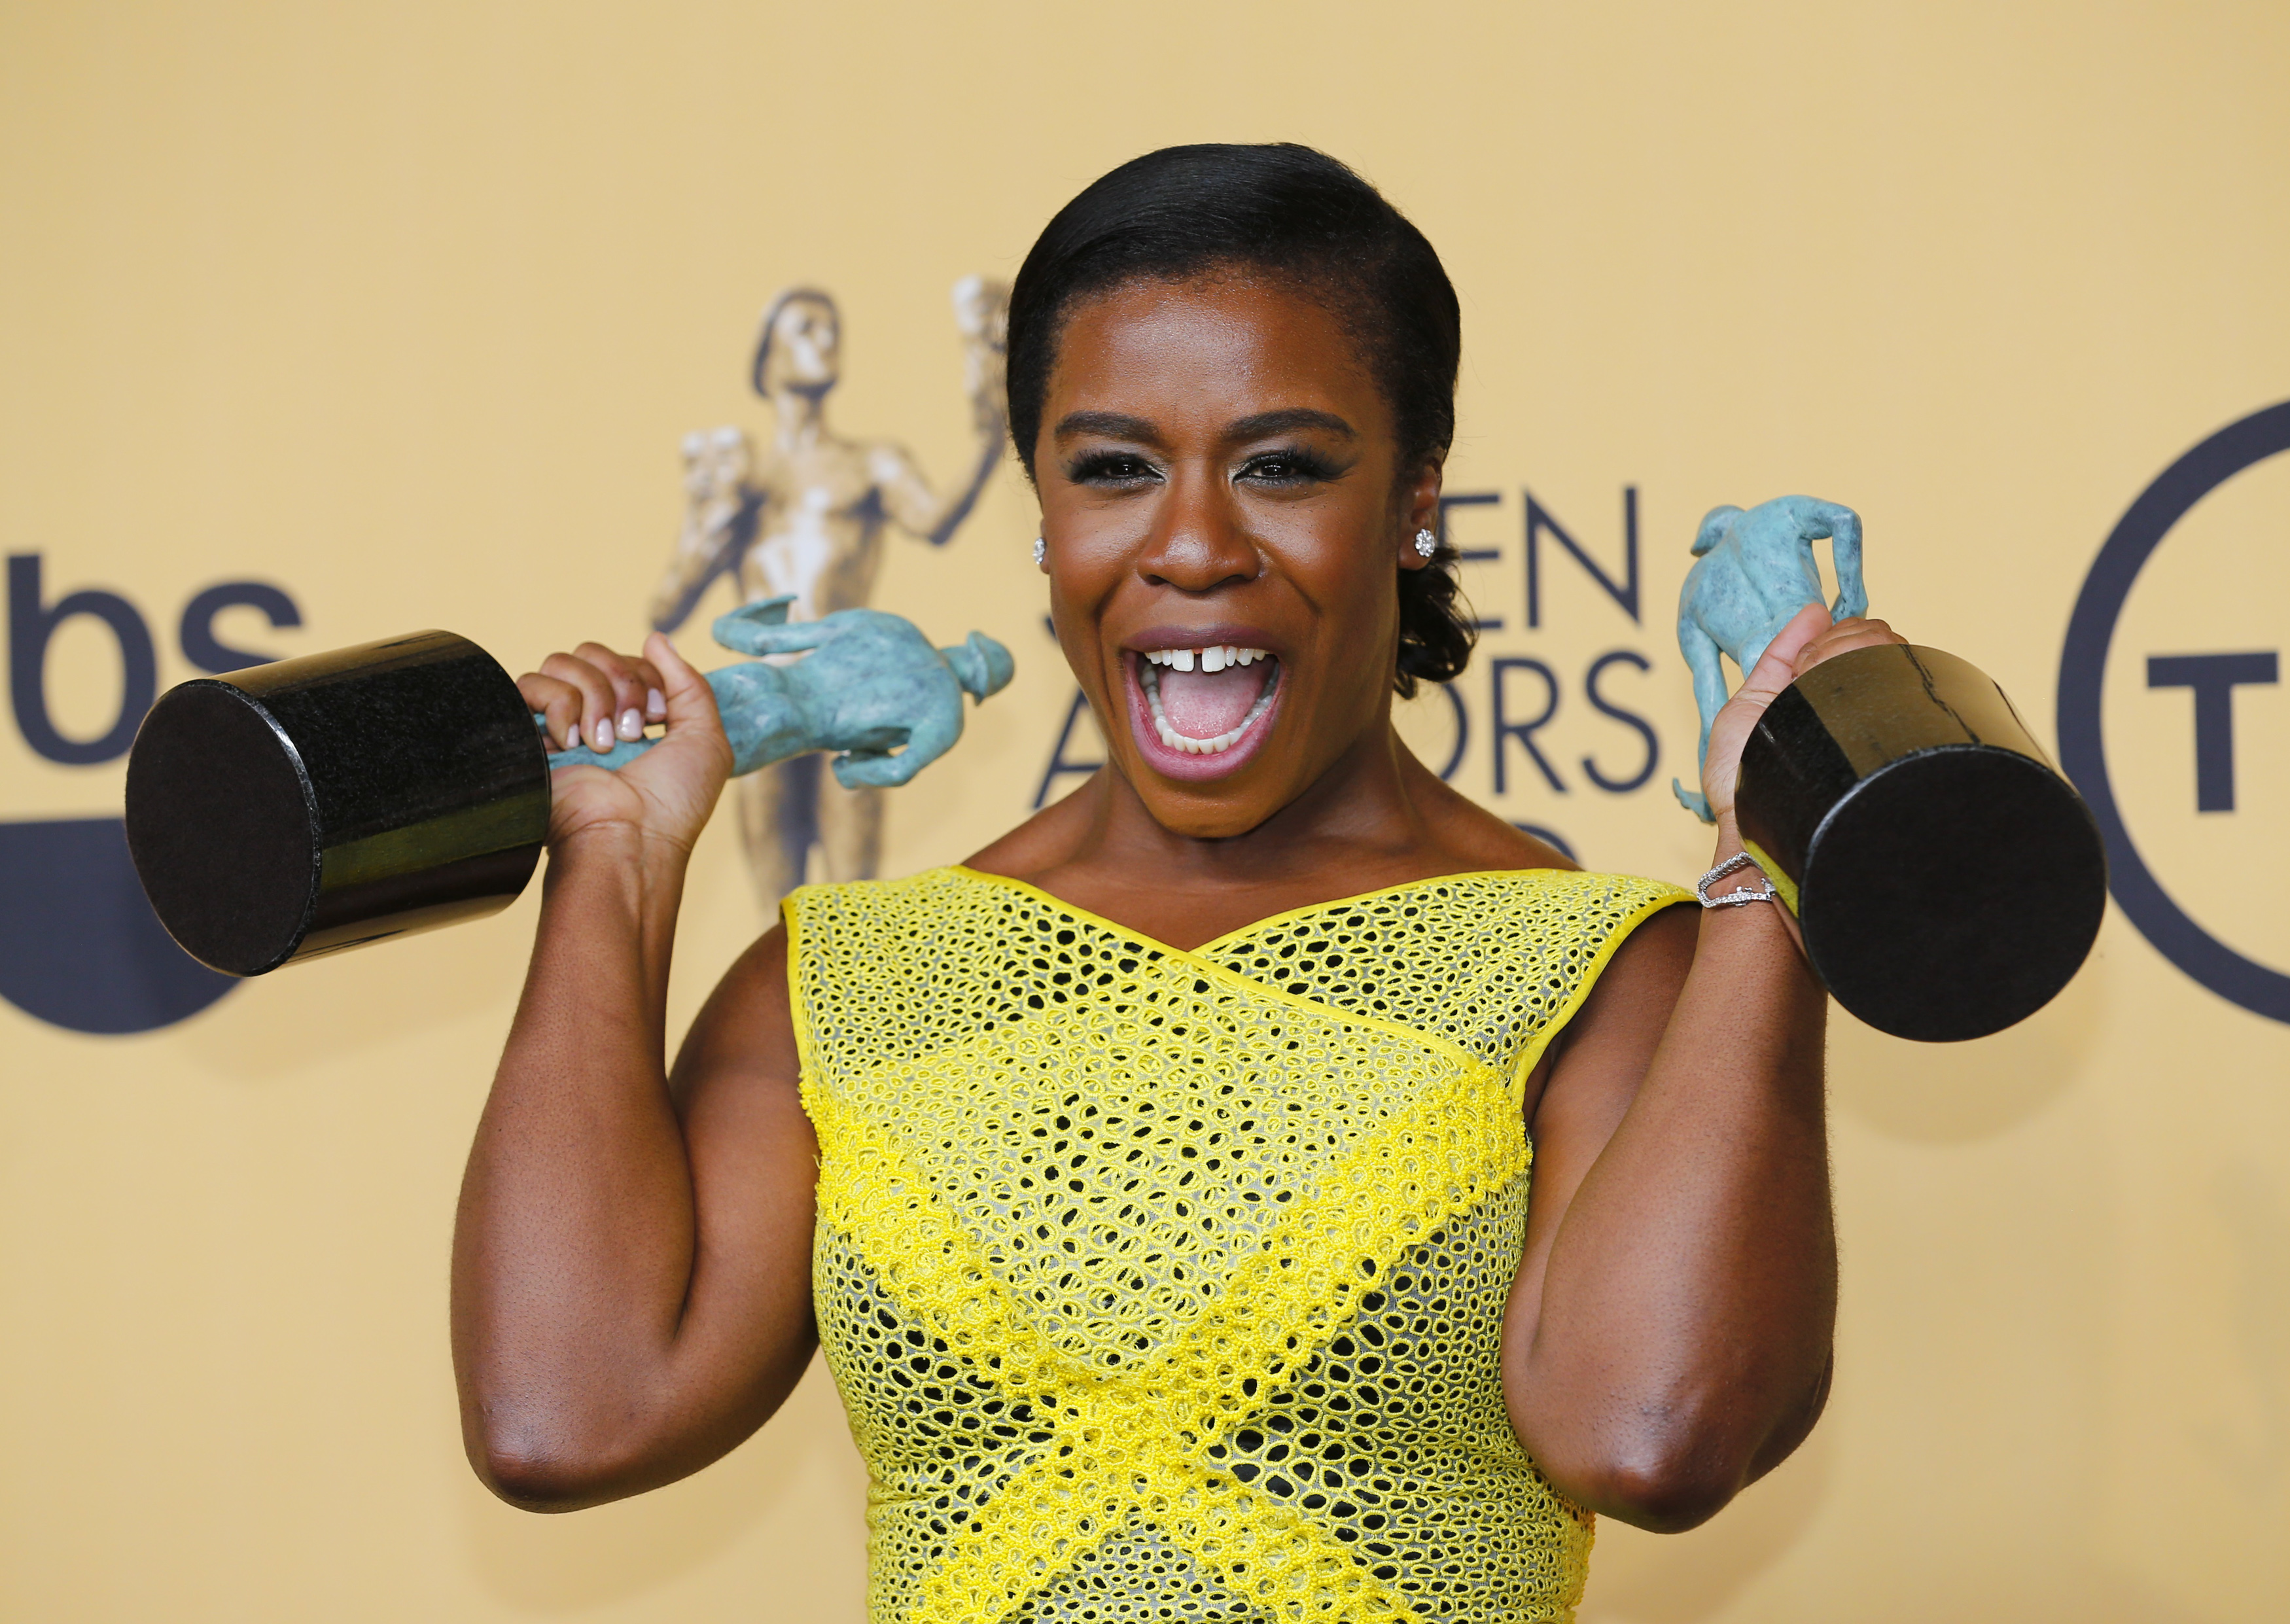 Uzo Aduba of the Netflix series  Orange is the New Black  poses backstage with her awards for Outstanding Performance by an Ensemble in a Comedy Series and Outstanding Performance by a Female Actor in a Comedy Series at the 21st annual Screen Actors Guild Awards in Los Angeles, California Jan. 25, 2015